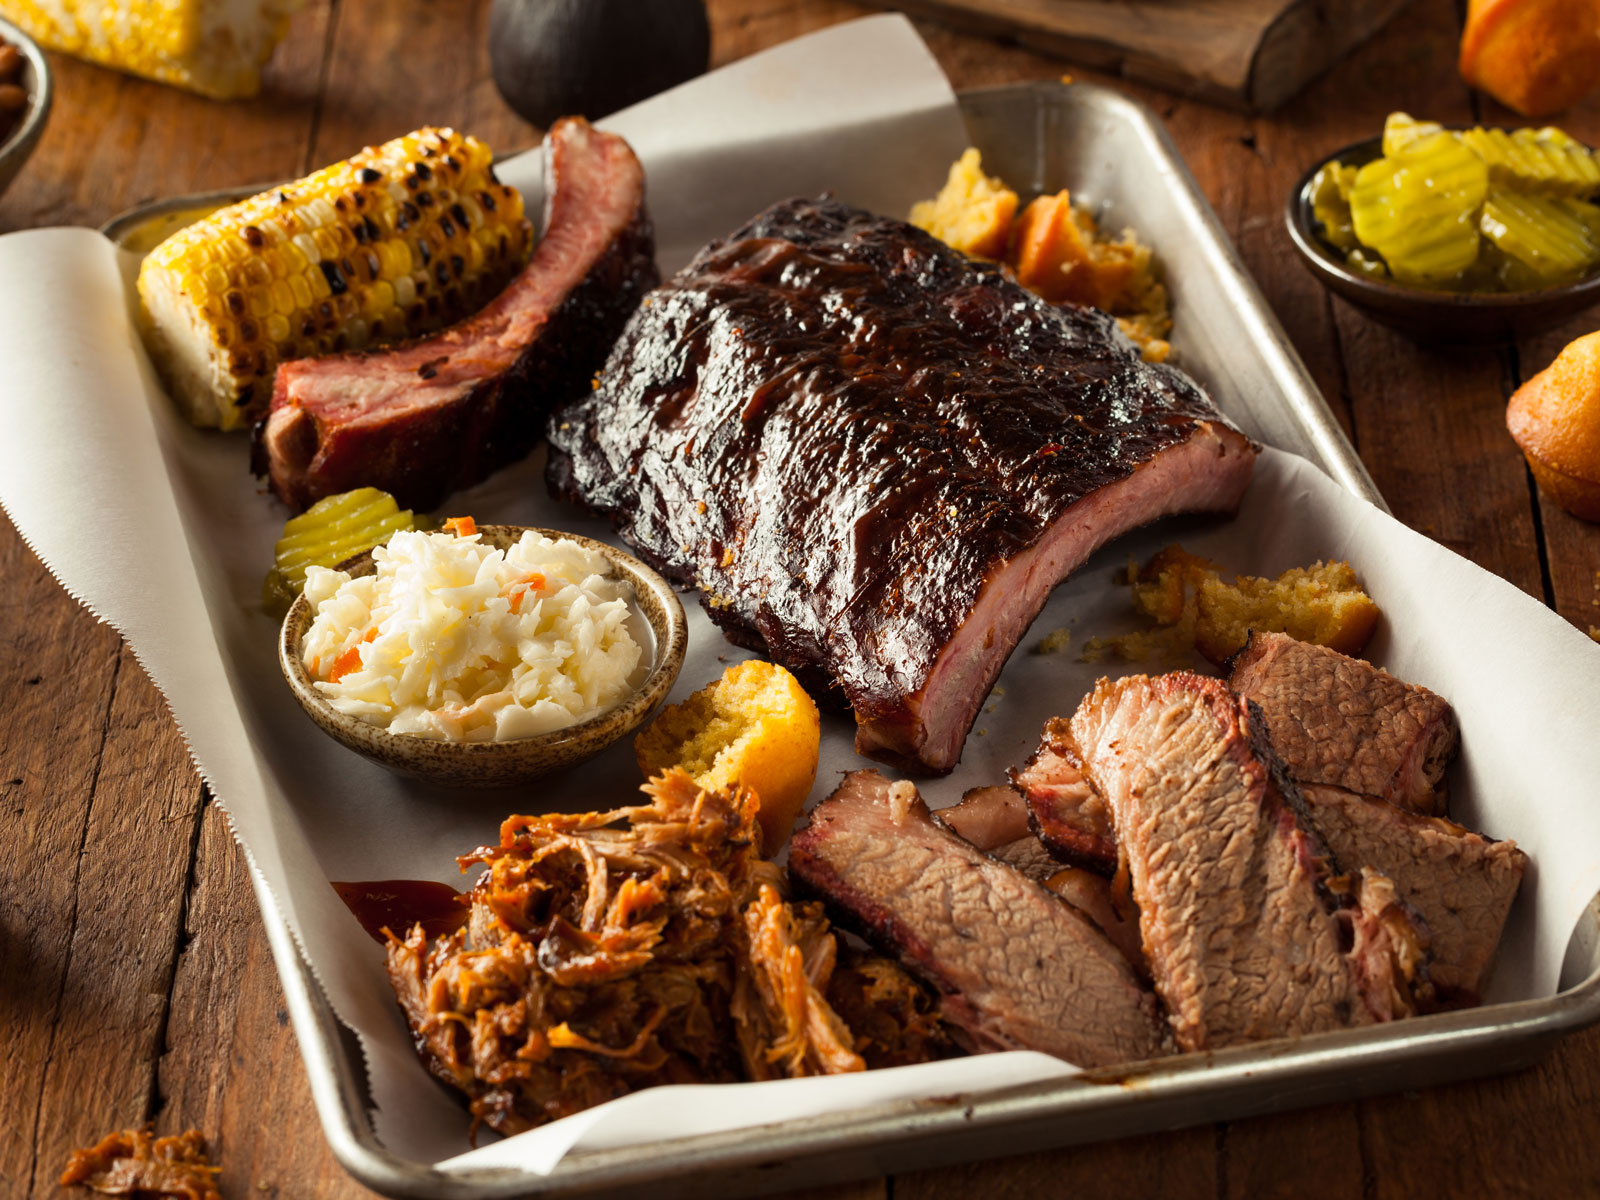 This Barbecue Joint Is Offering Free BBQ for Life If You Help Catch Whoever Robbed It